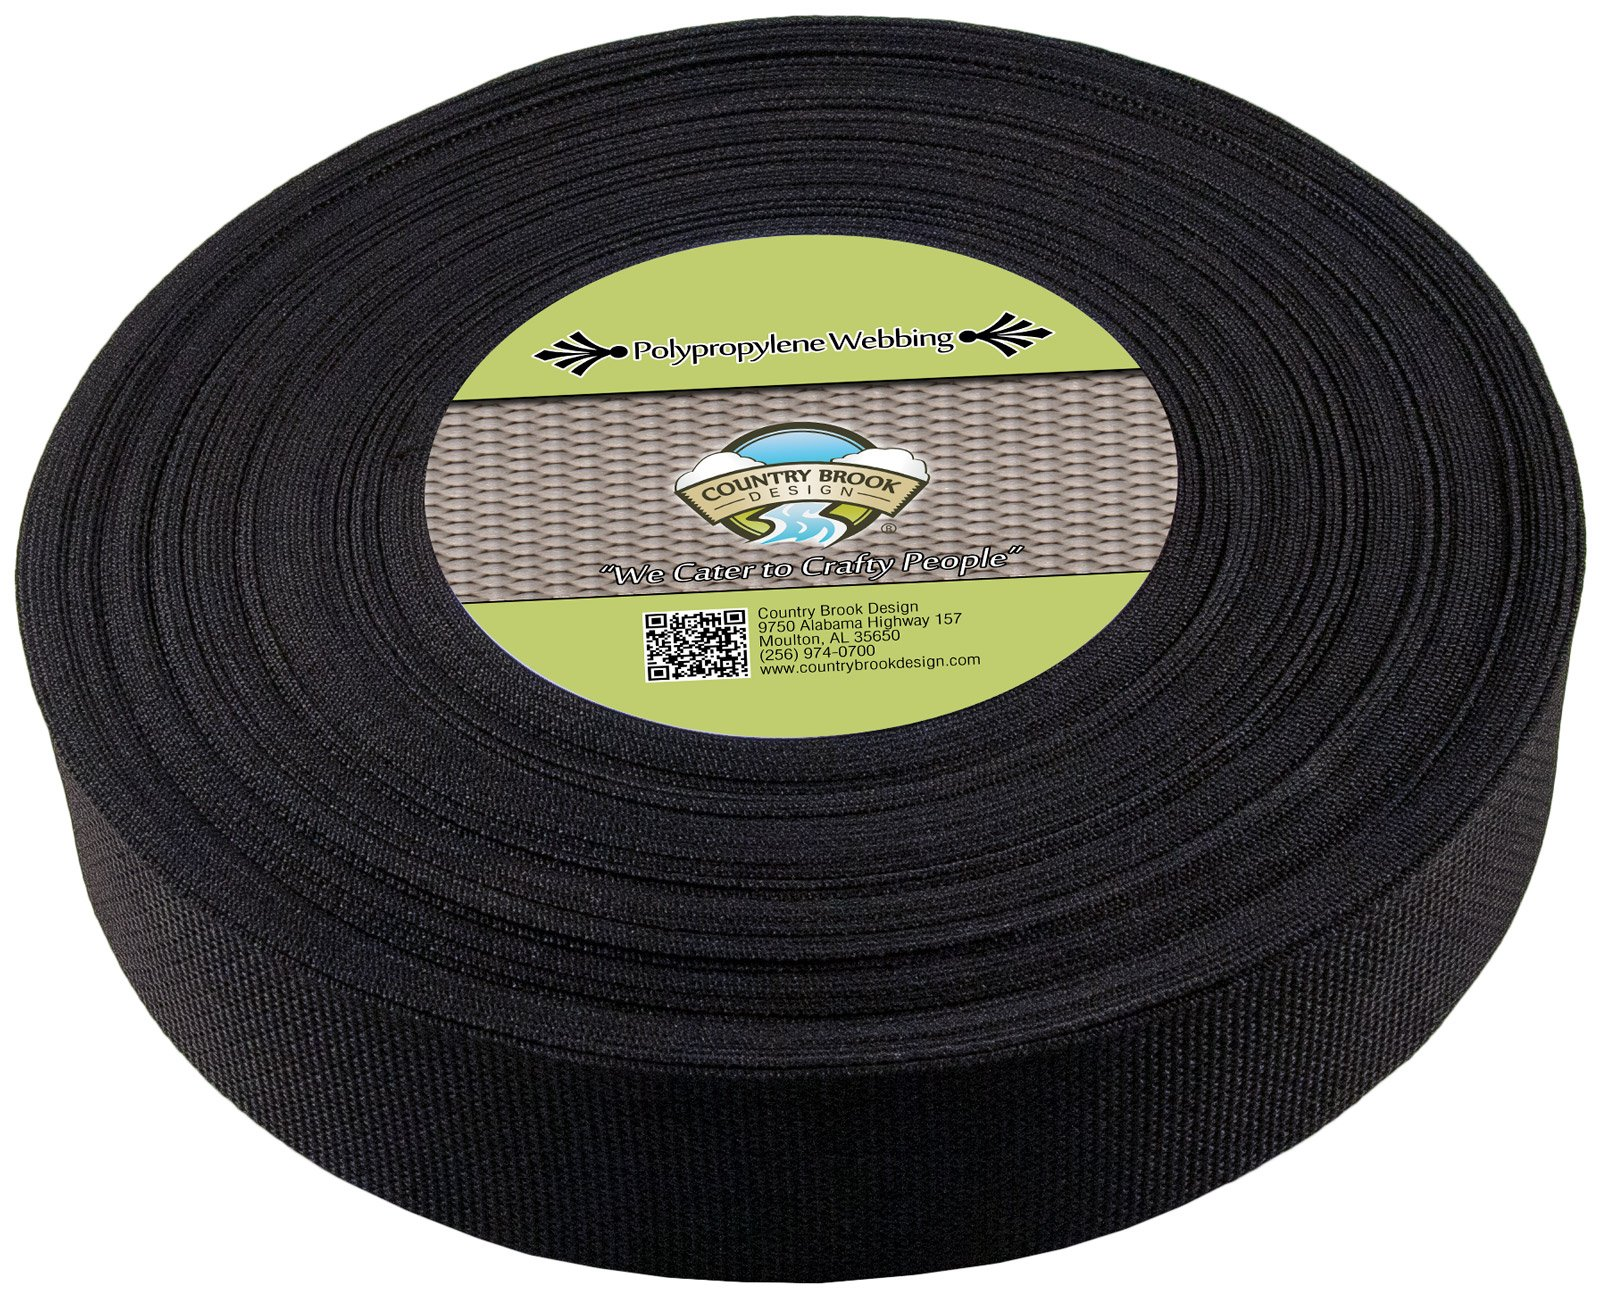 Country Brook Design - 2 Inch Black Heavy Polypropylene (Polypro) Webbing, 25 Yards